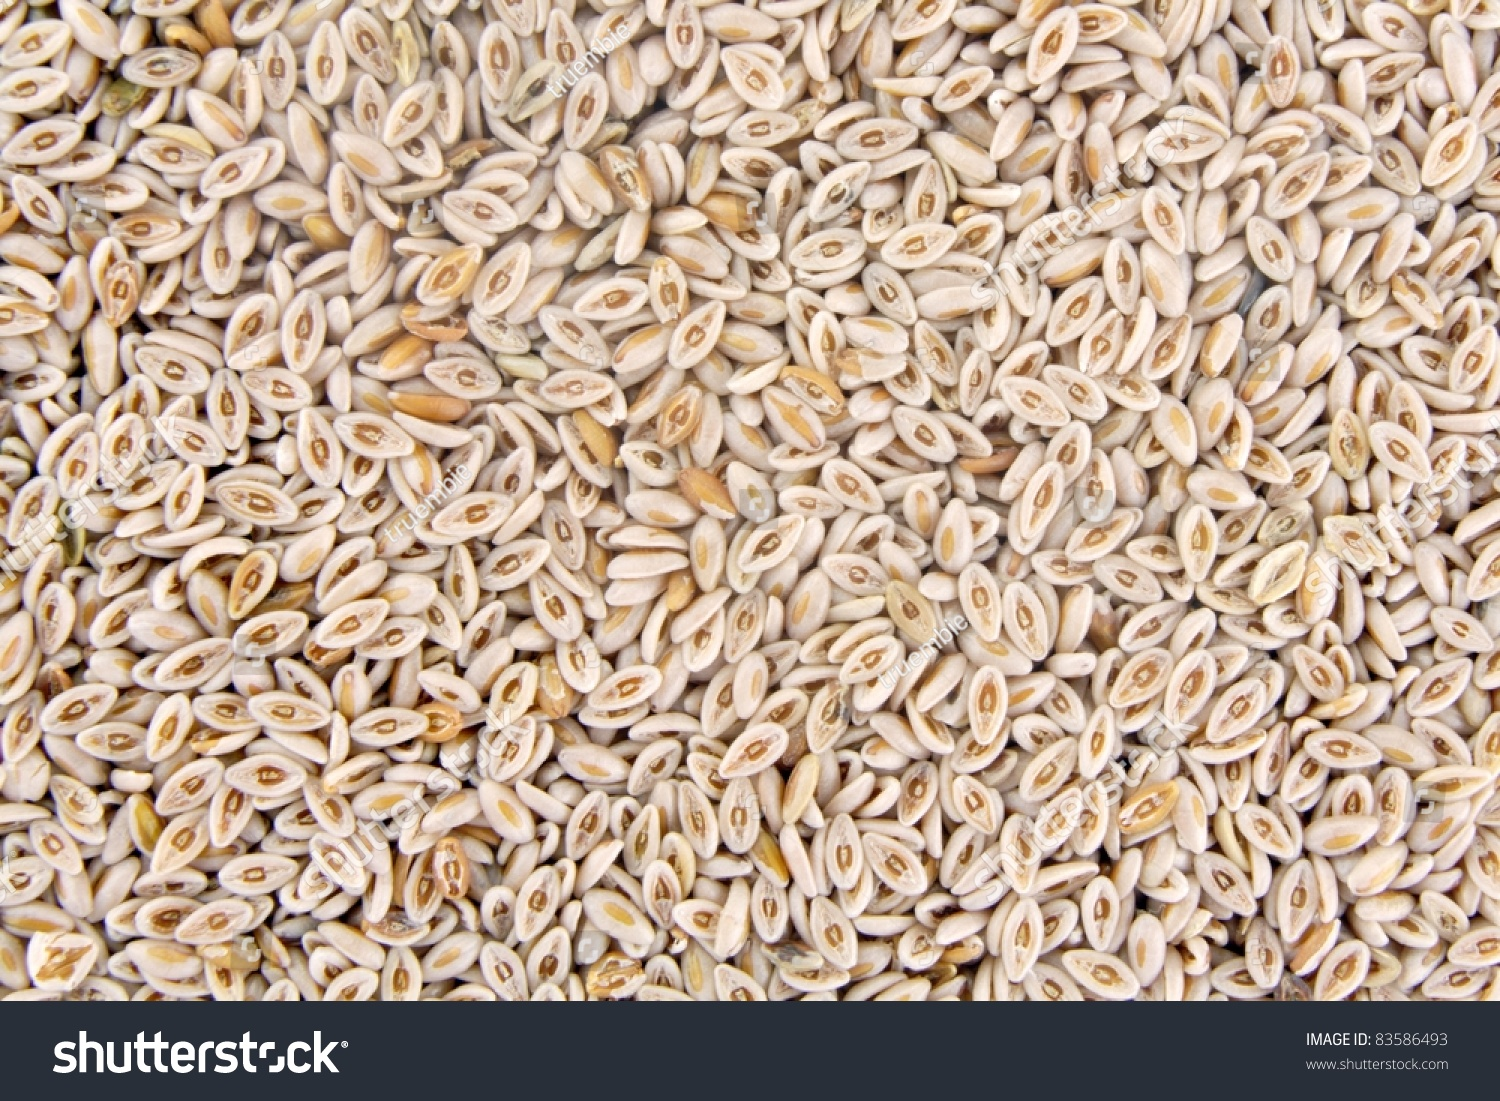 Plantago Ovata Seed As Traditional Remedy For Constipation Stock Photo 83586493 : Shutterstock